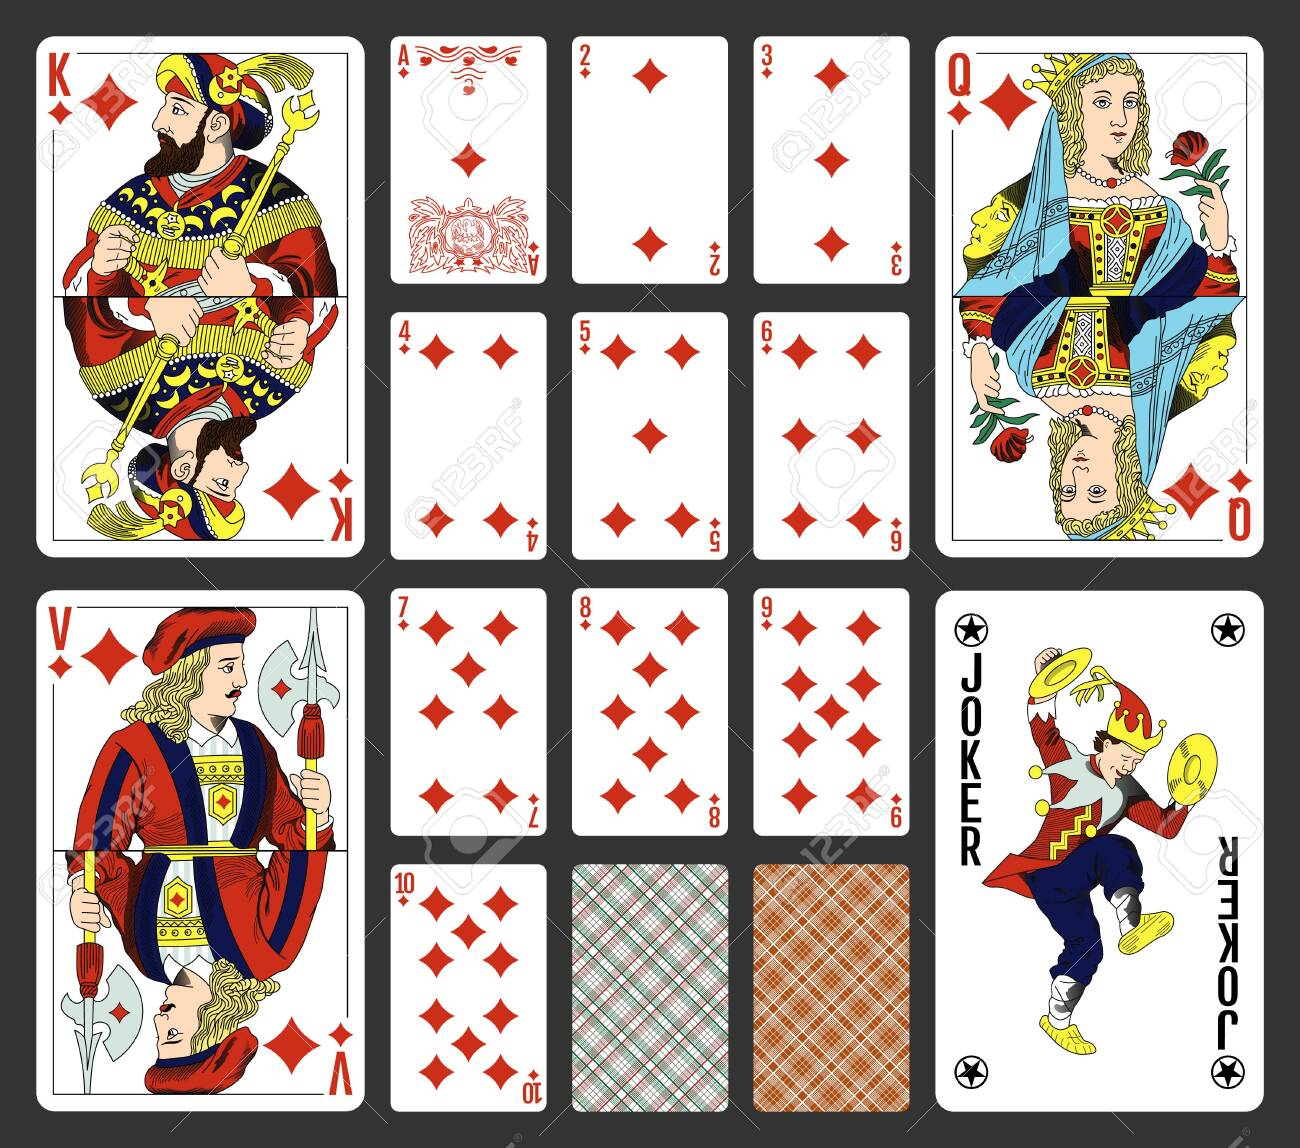 Diamonds suite design for a pack of traditional style playing cards - 151316568